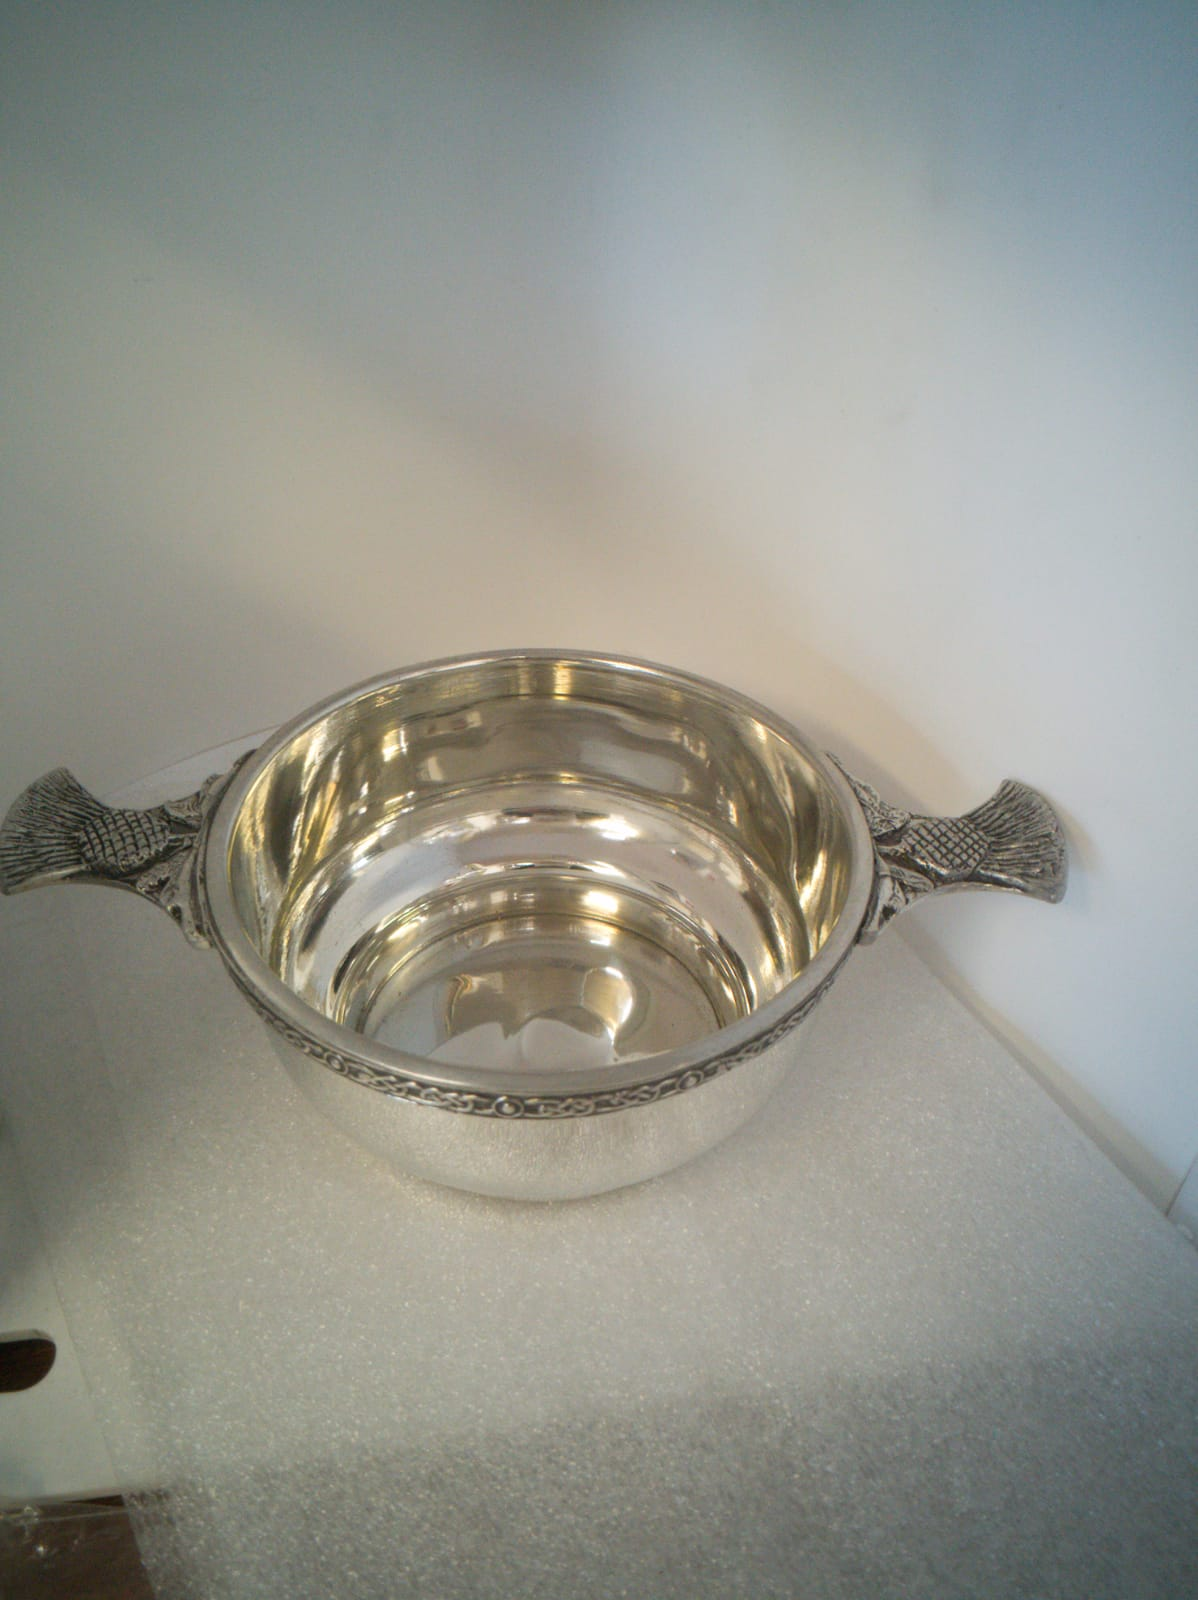 QB002 pewter celtic quaich bowl with thistle handle